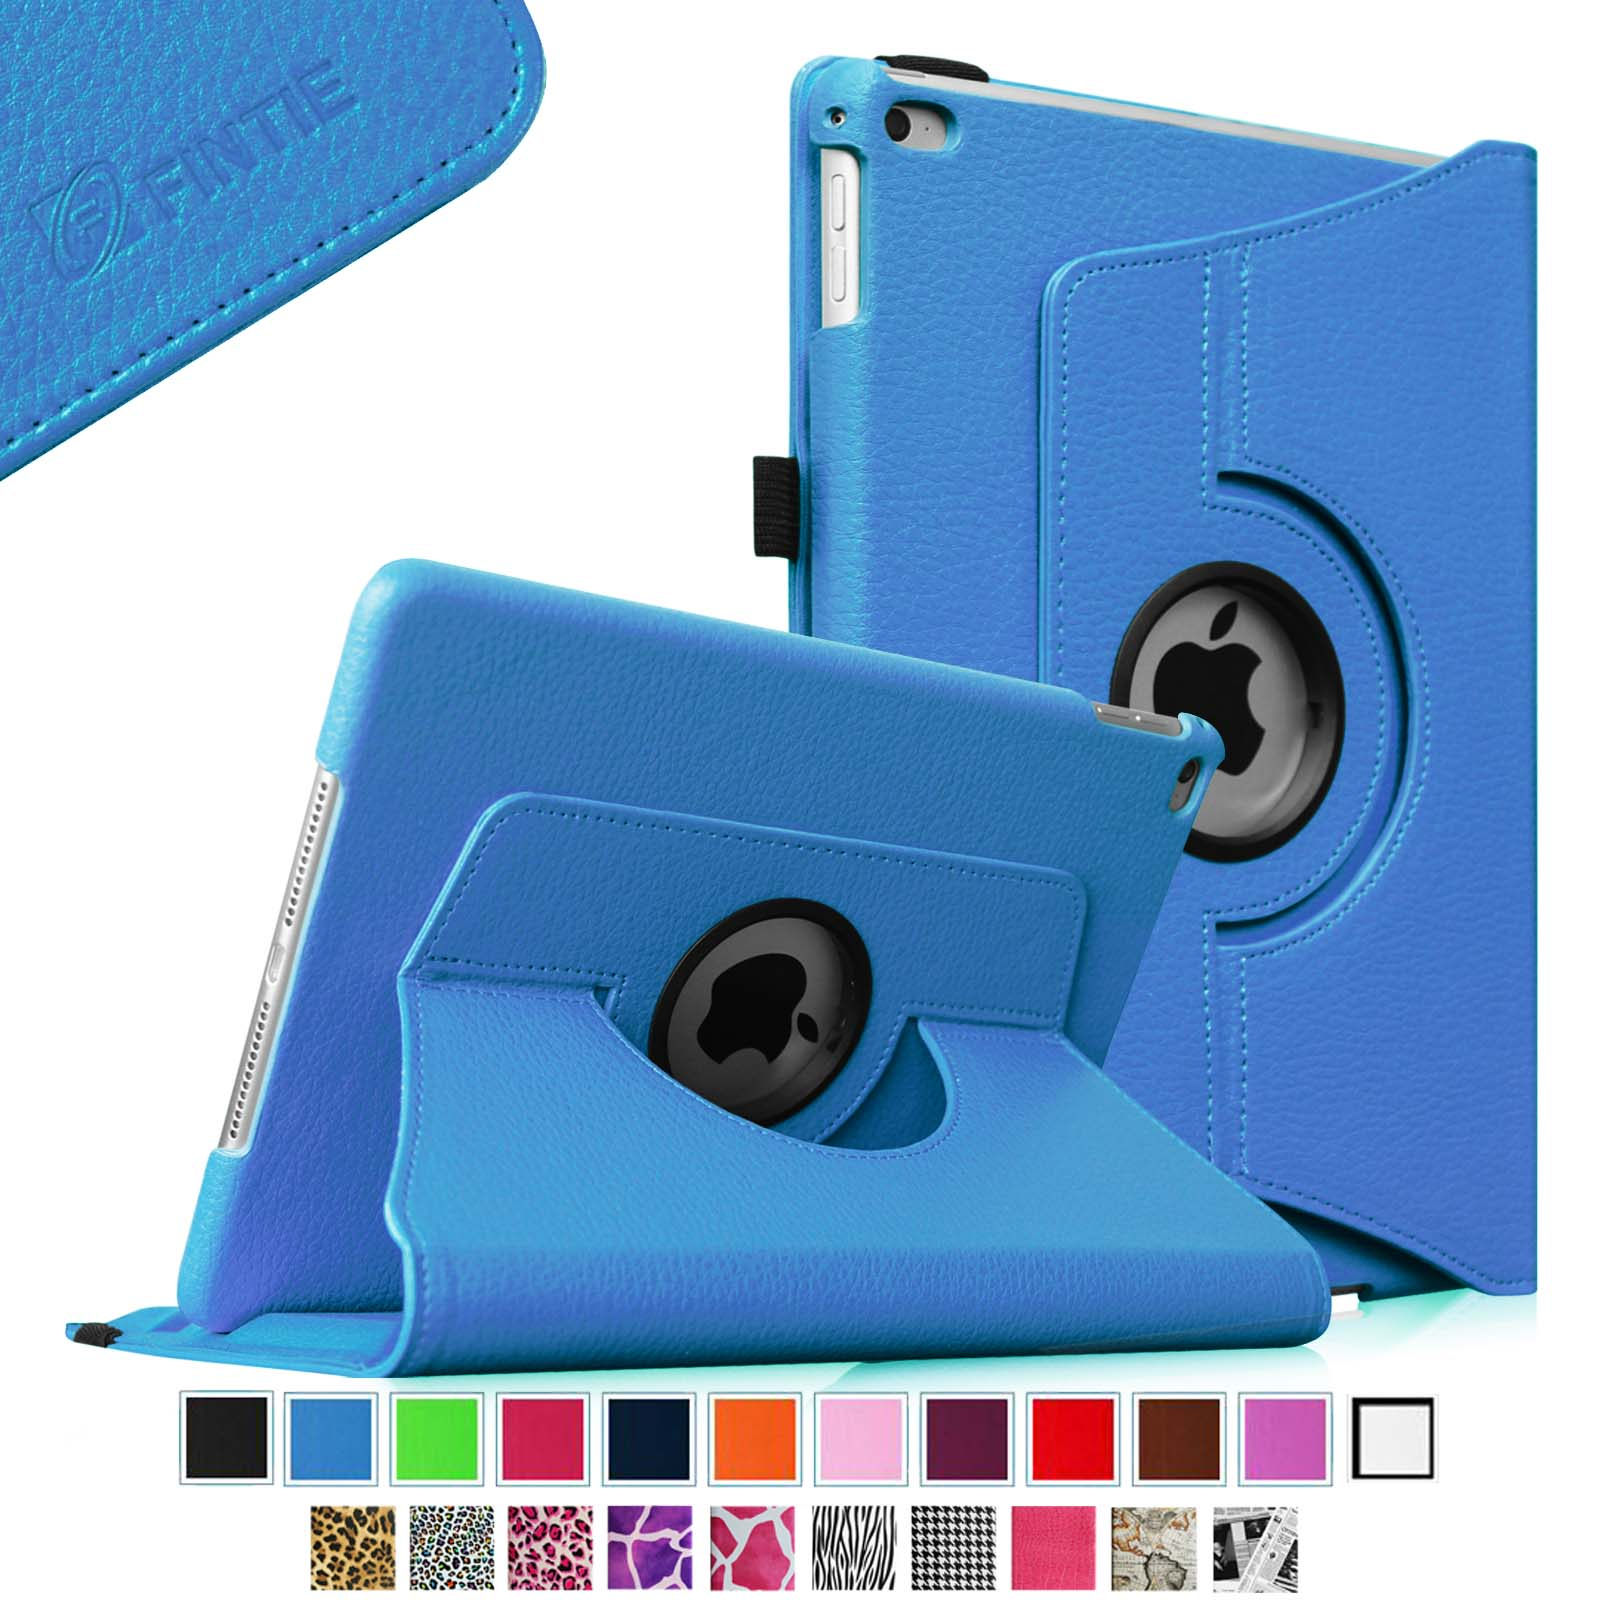 Fintie iPad Air 2 Case - 360 Degree Rotating Stand Cover with Auto Sleep / Wake Feature, Blue